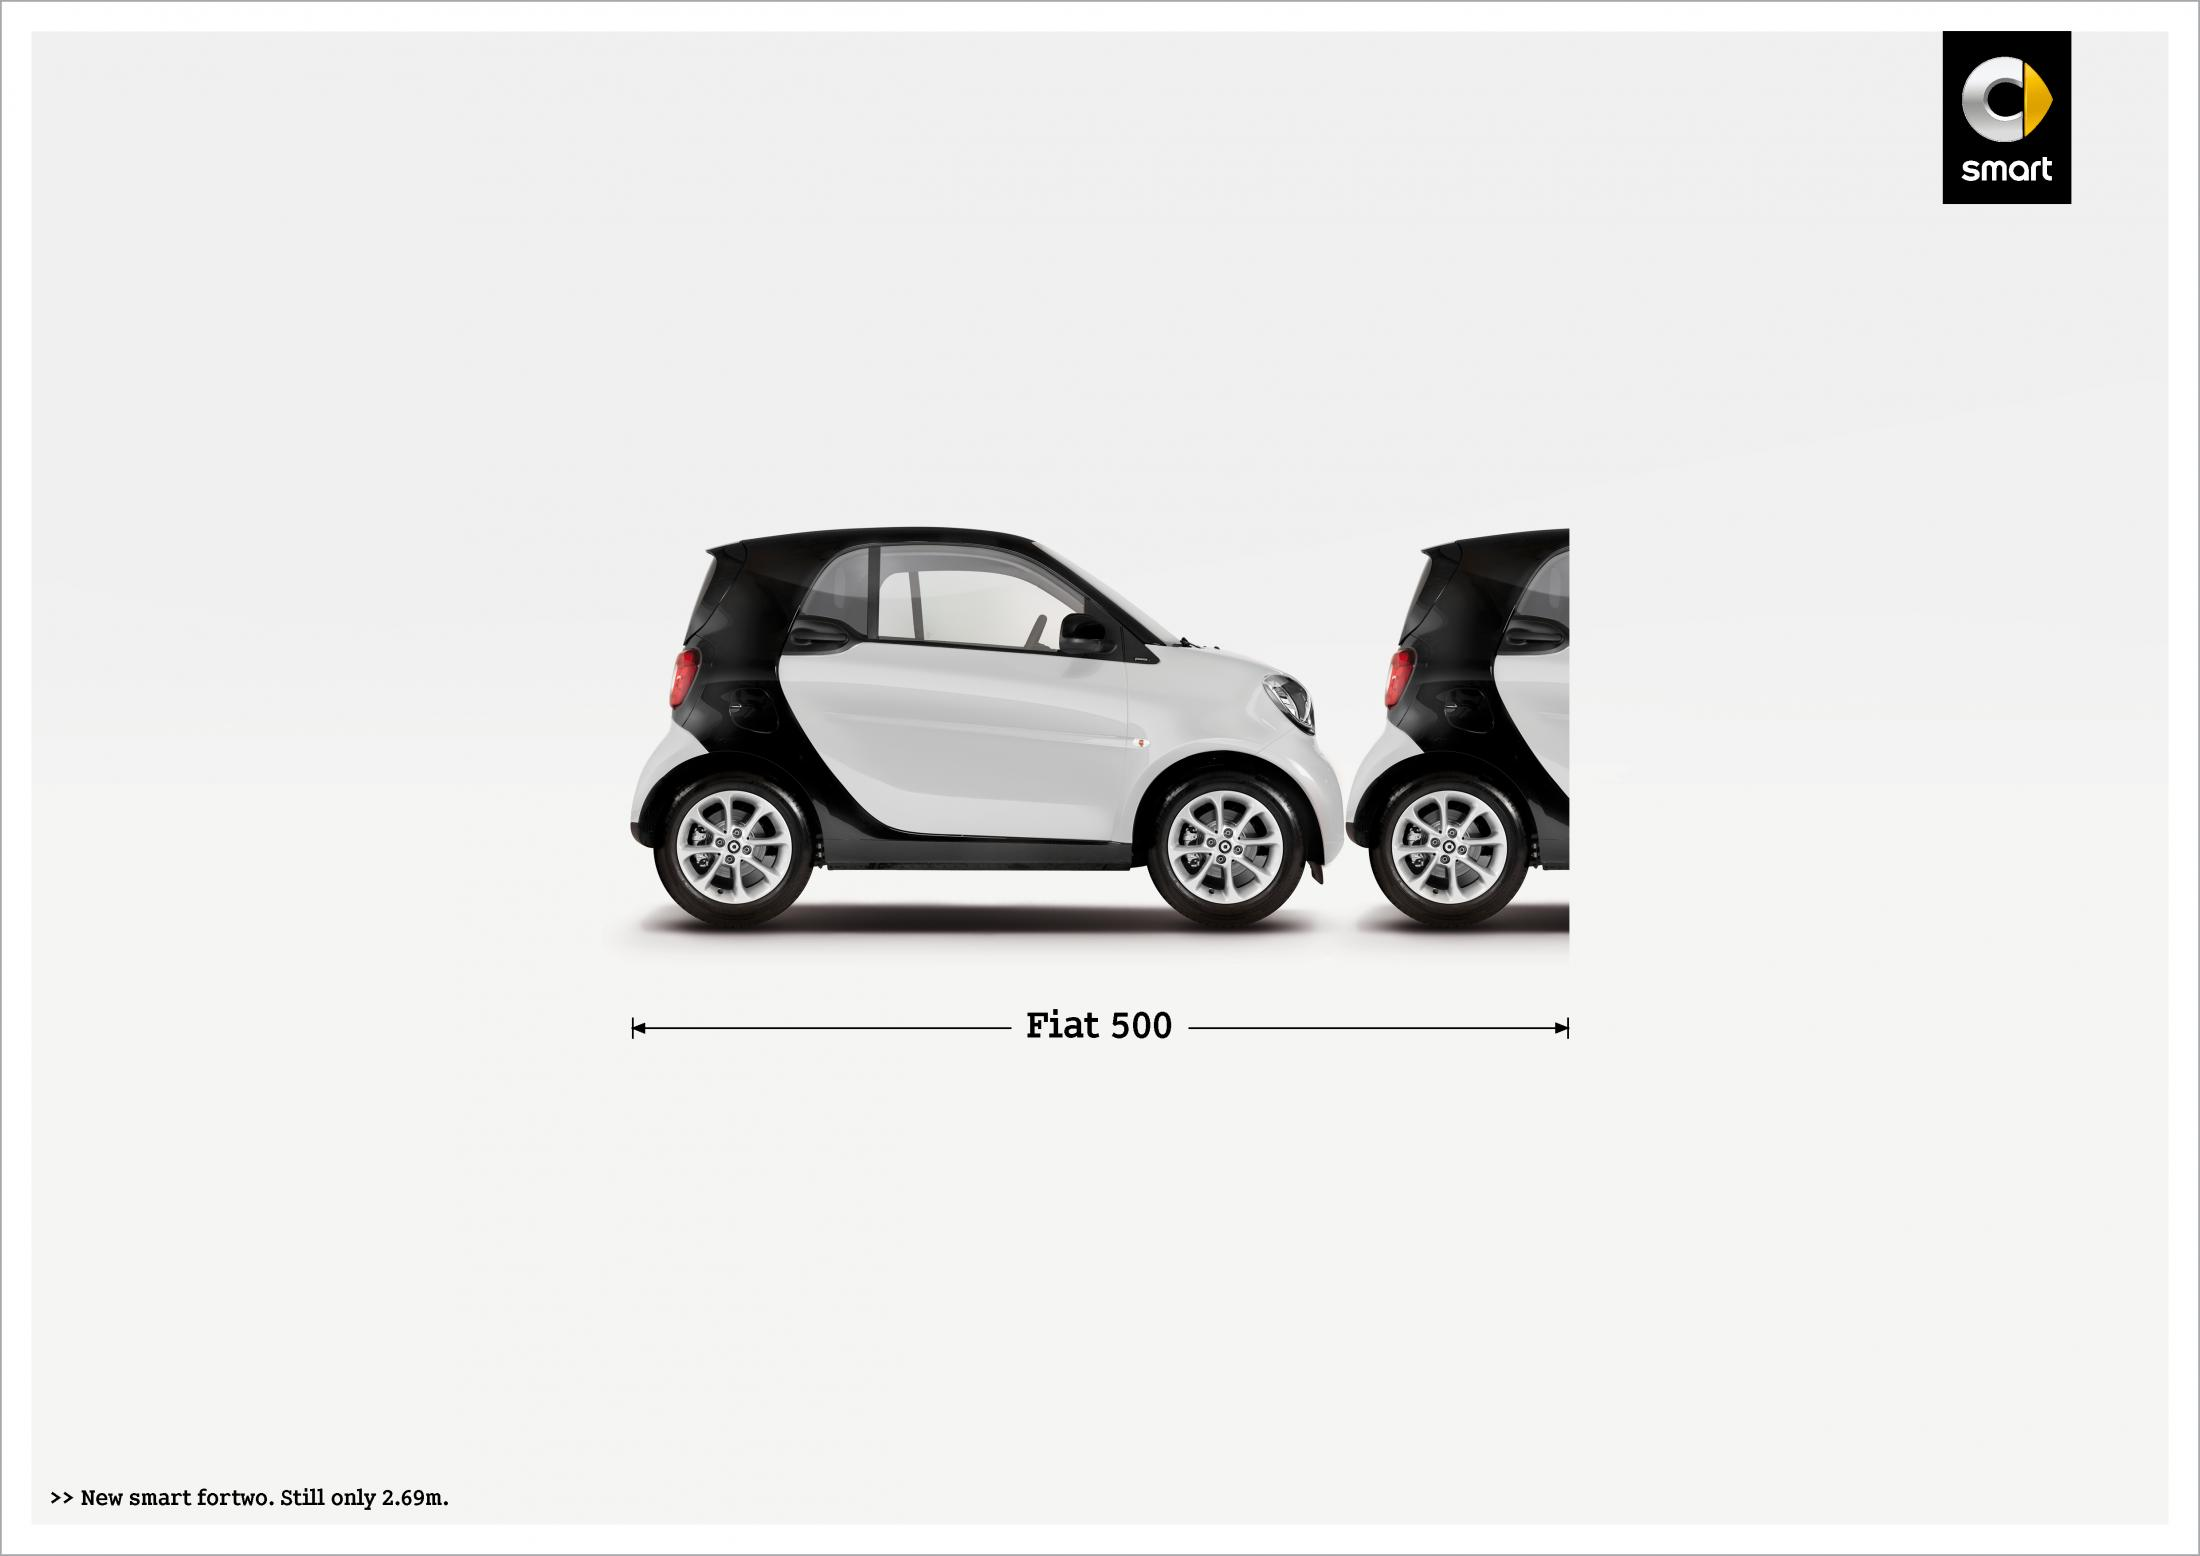 Thumbnail for COMPETITORS - Fiat 500